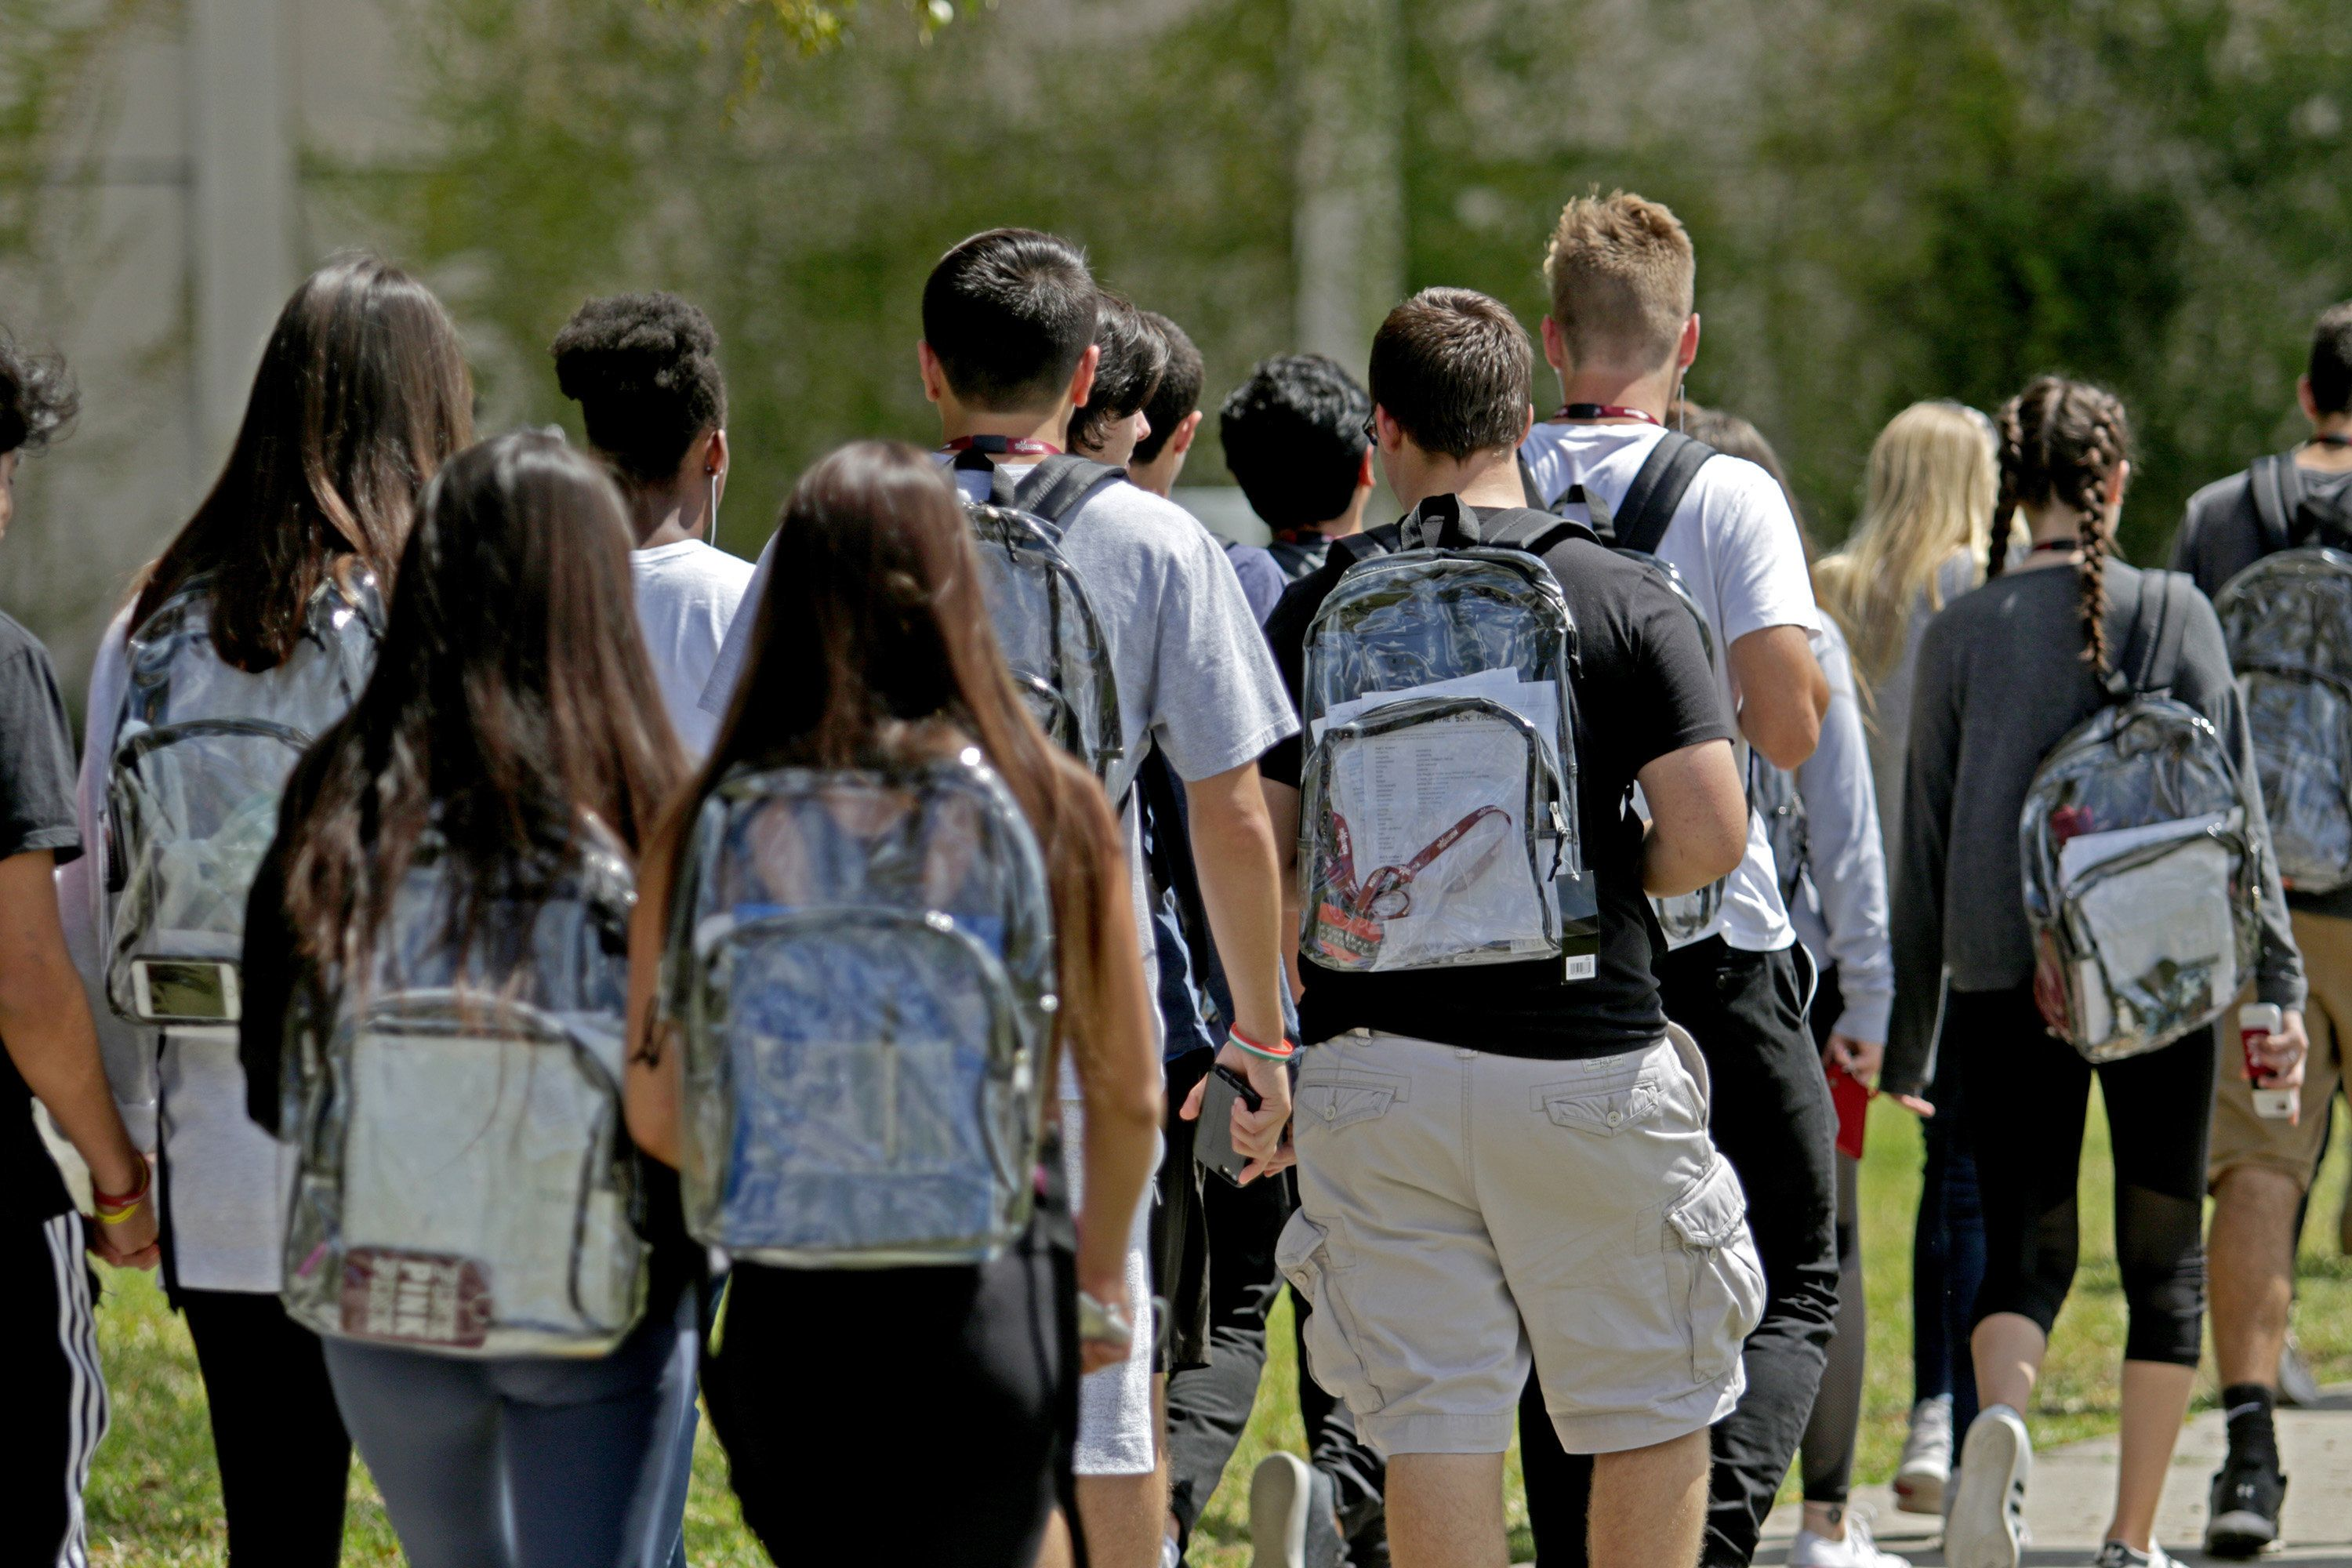 Students wear clear backpacks outside of Marjory Stoneman Douglas High School in Parkland, Fla. on Monday, April 2, 2018. Extra security is one of a number of security measures the school district has enacted as a result of the Feb. 14 shooting at the school that killed 17. (John McCall/Sun Sentinel/TNS via Getty Images)